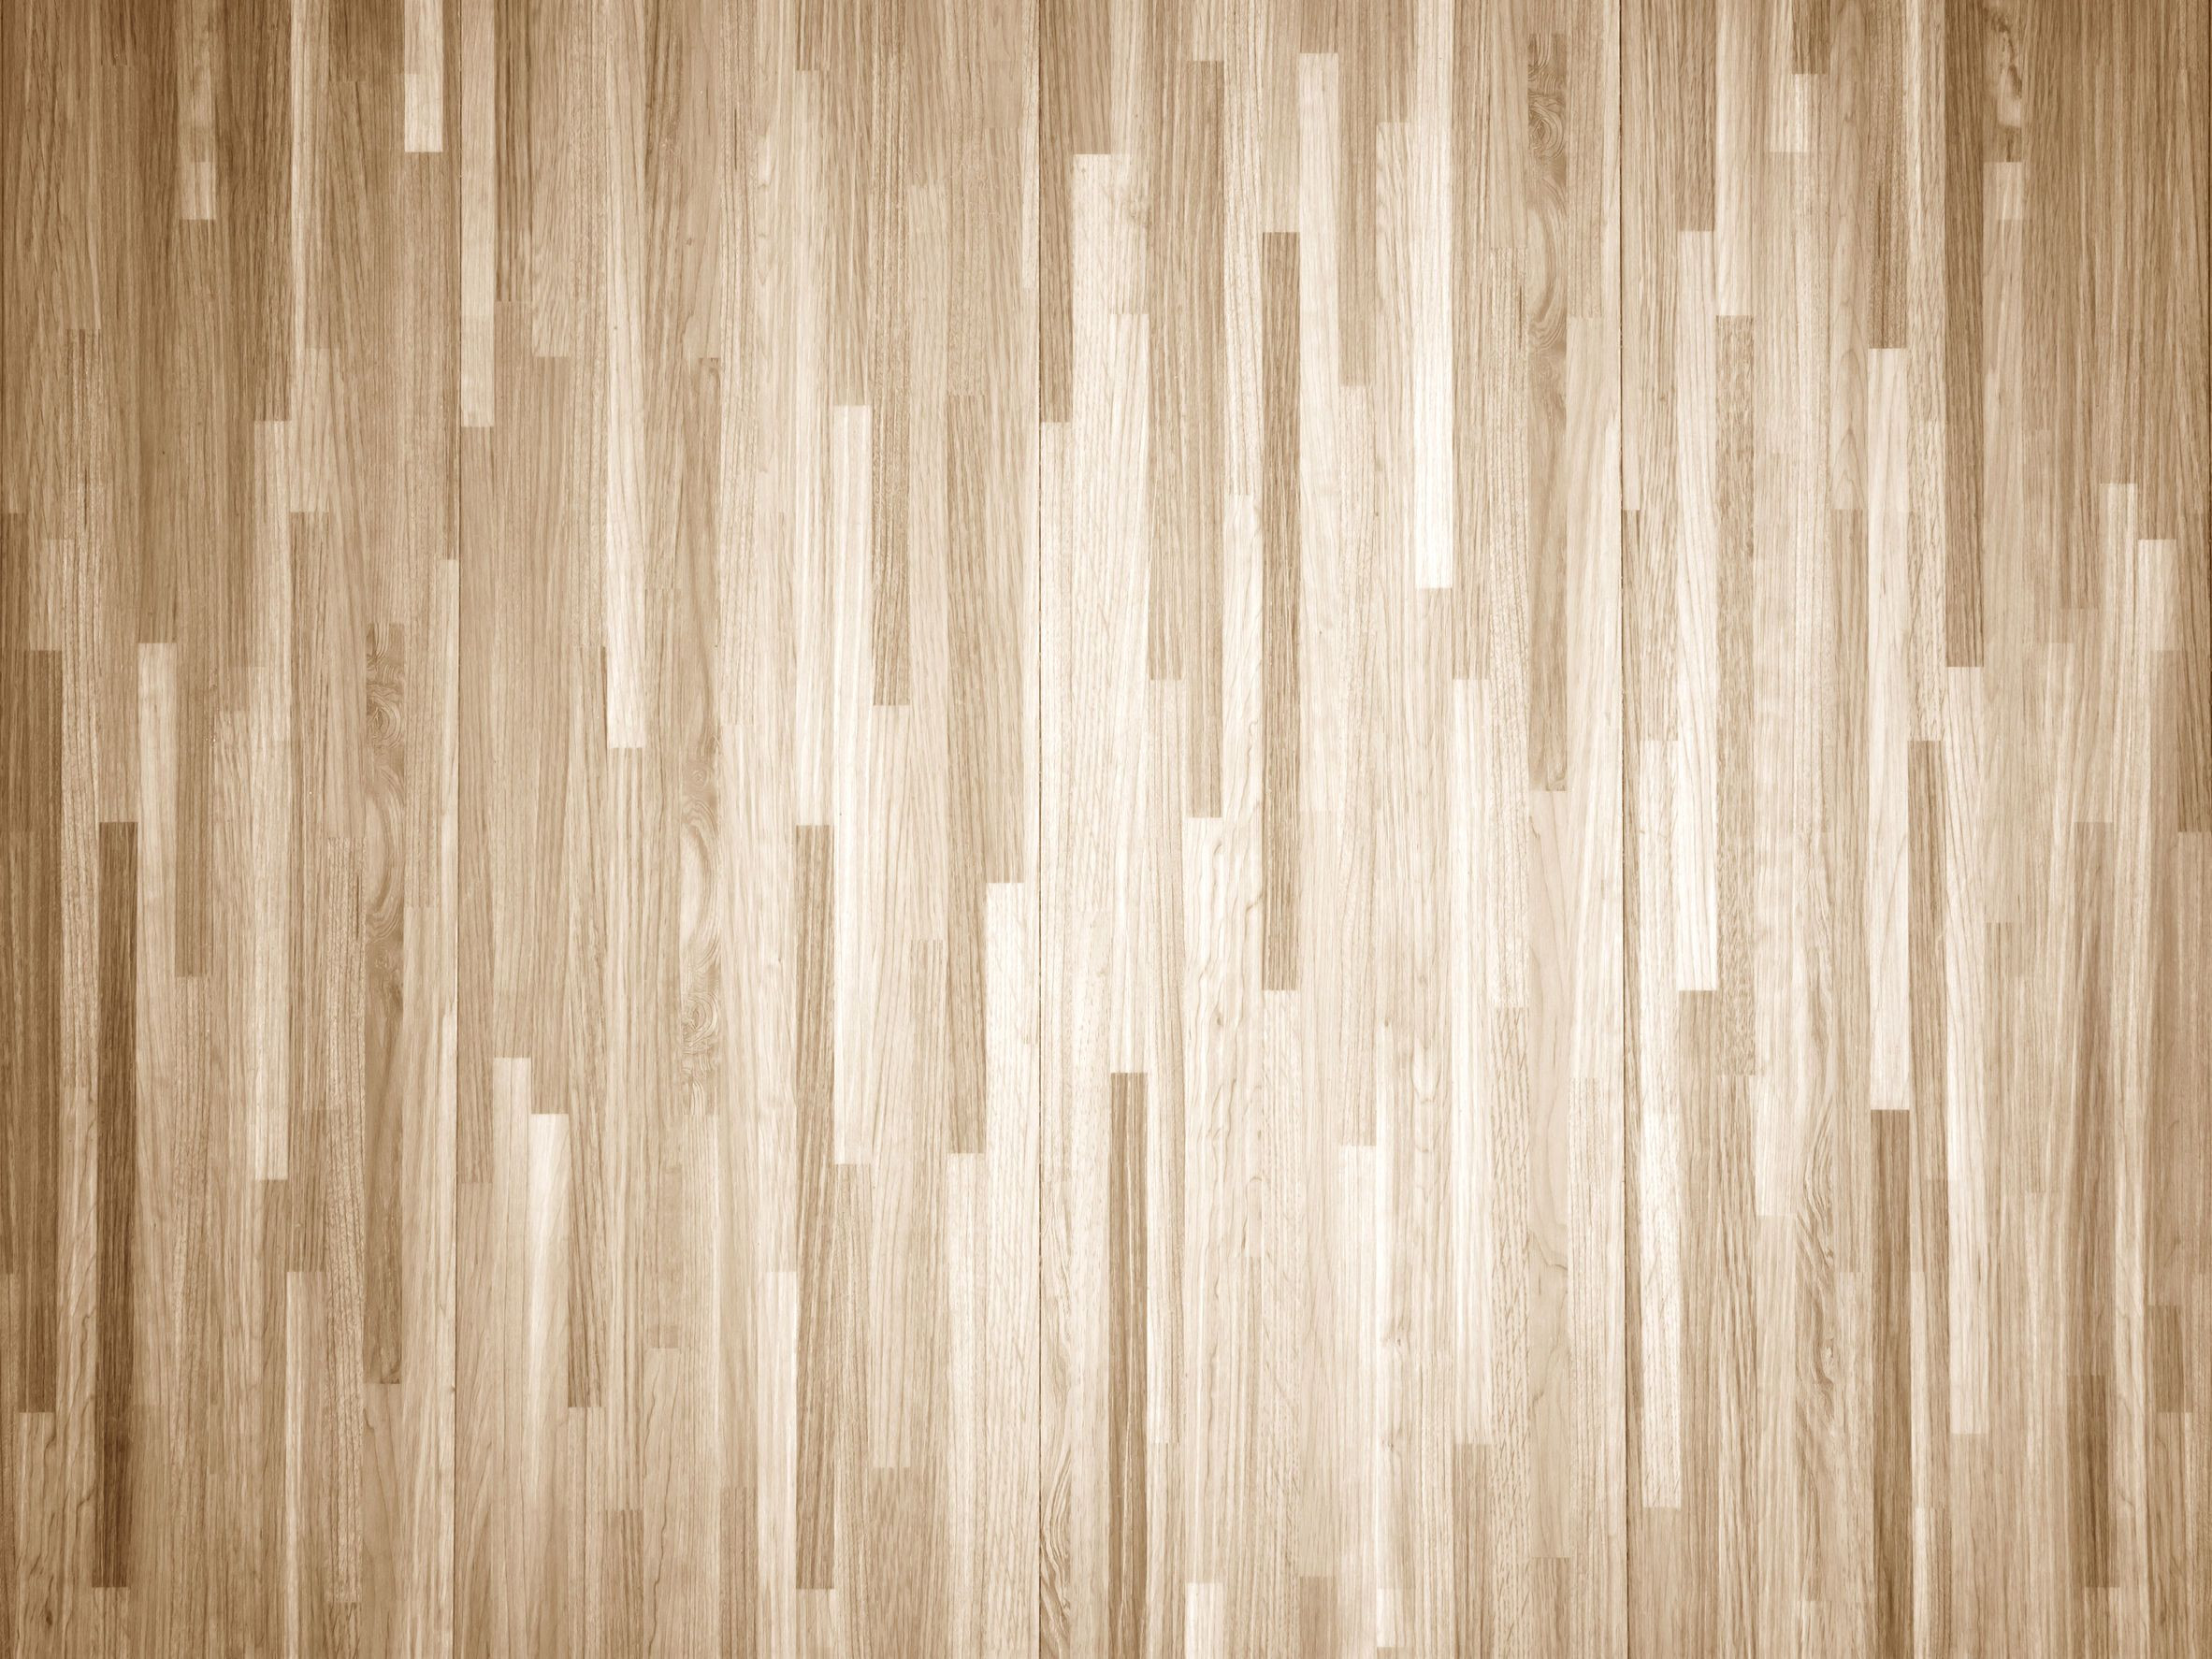 hardwood floor installation process of how to chemically strip wood floors woodfloordoctor com pertaining to you